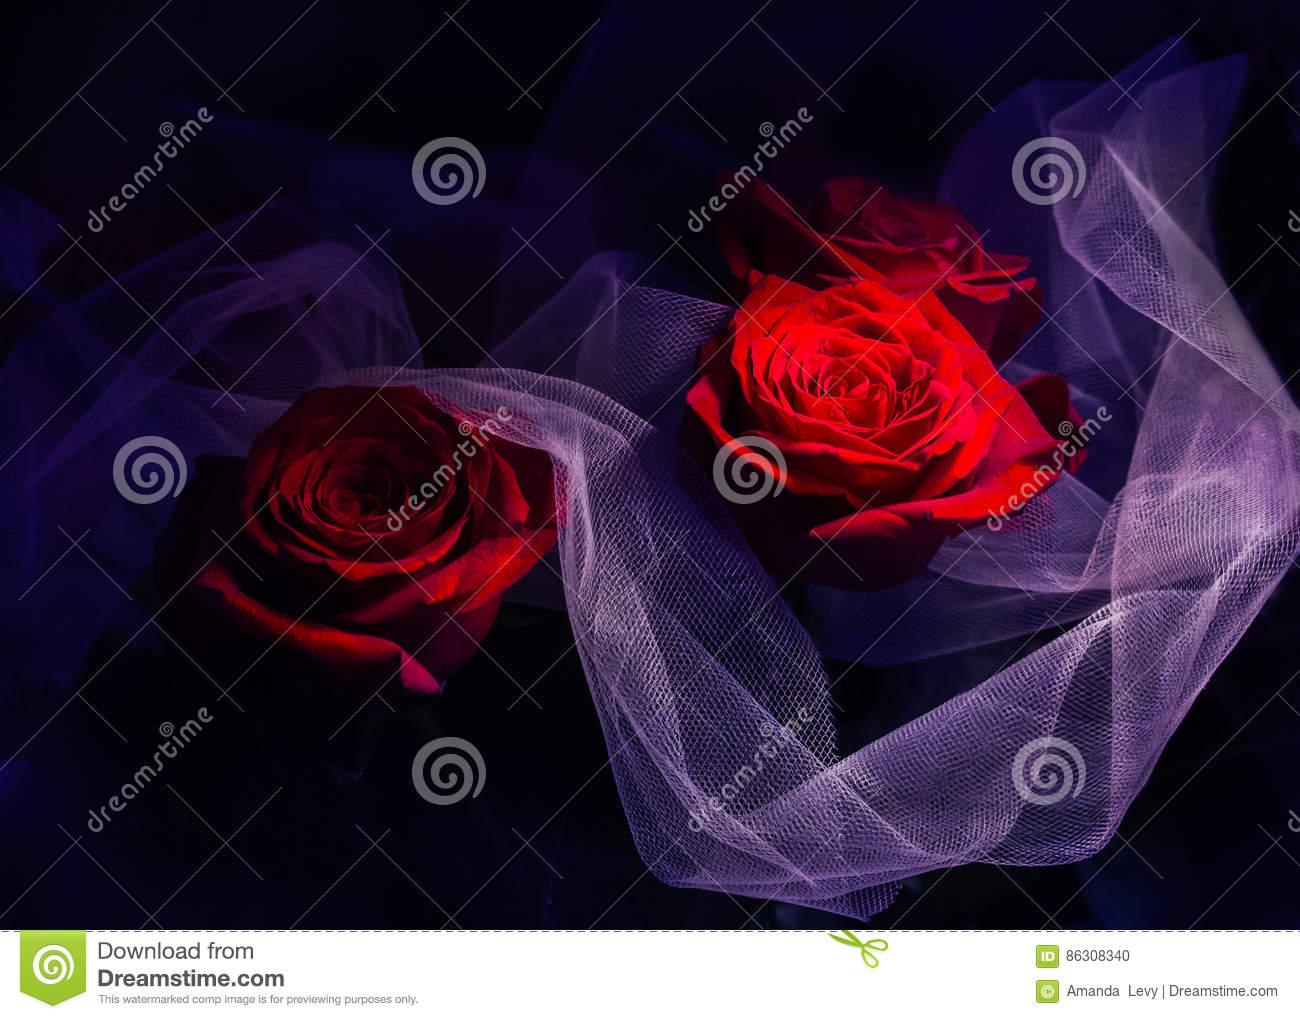 Roses on a dark dramatic background